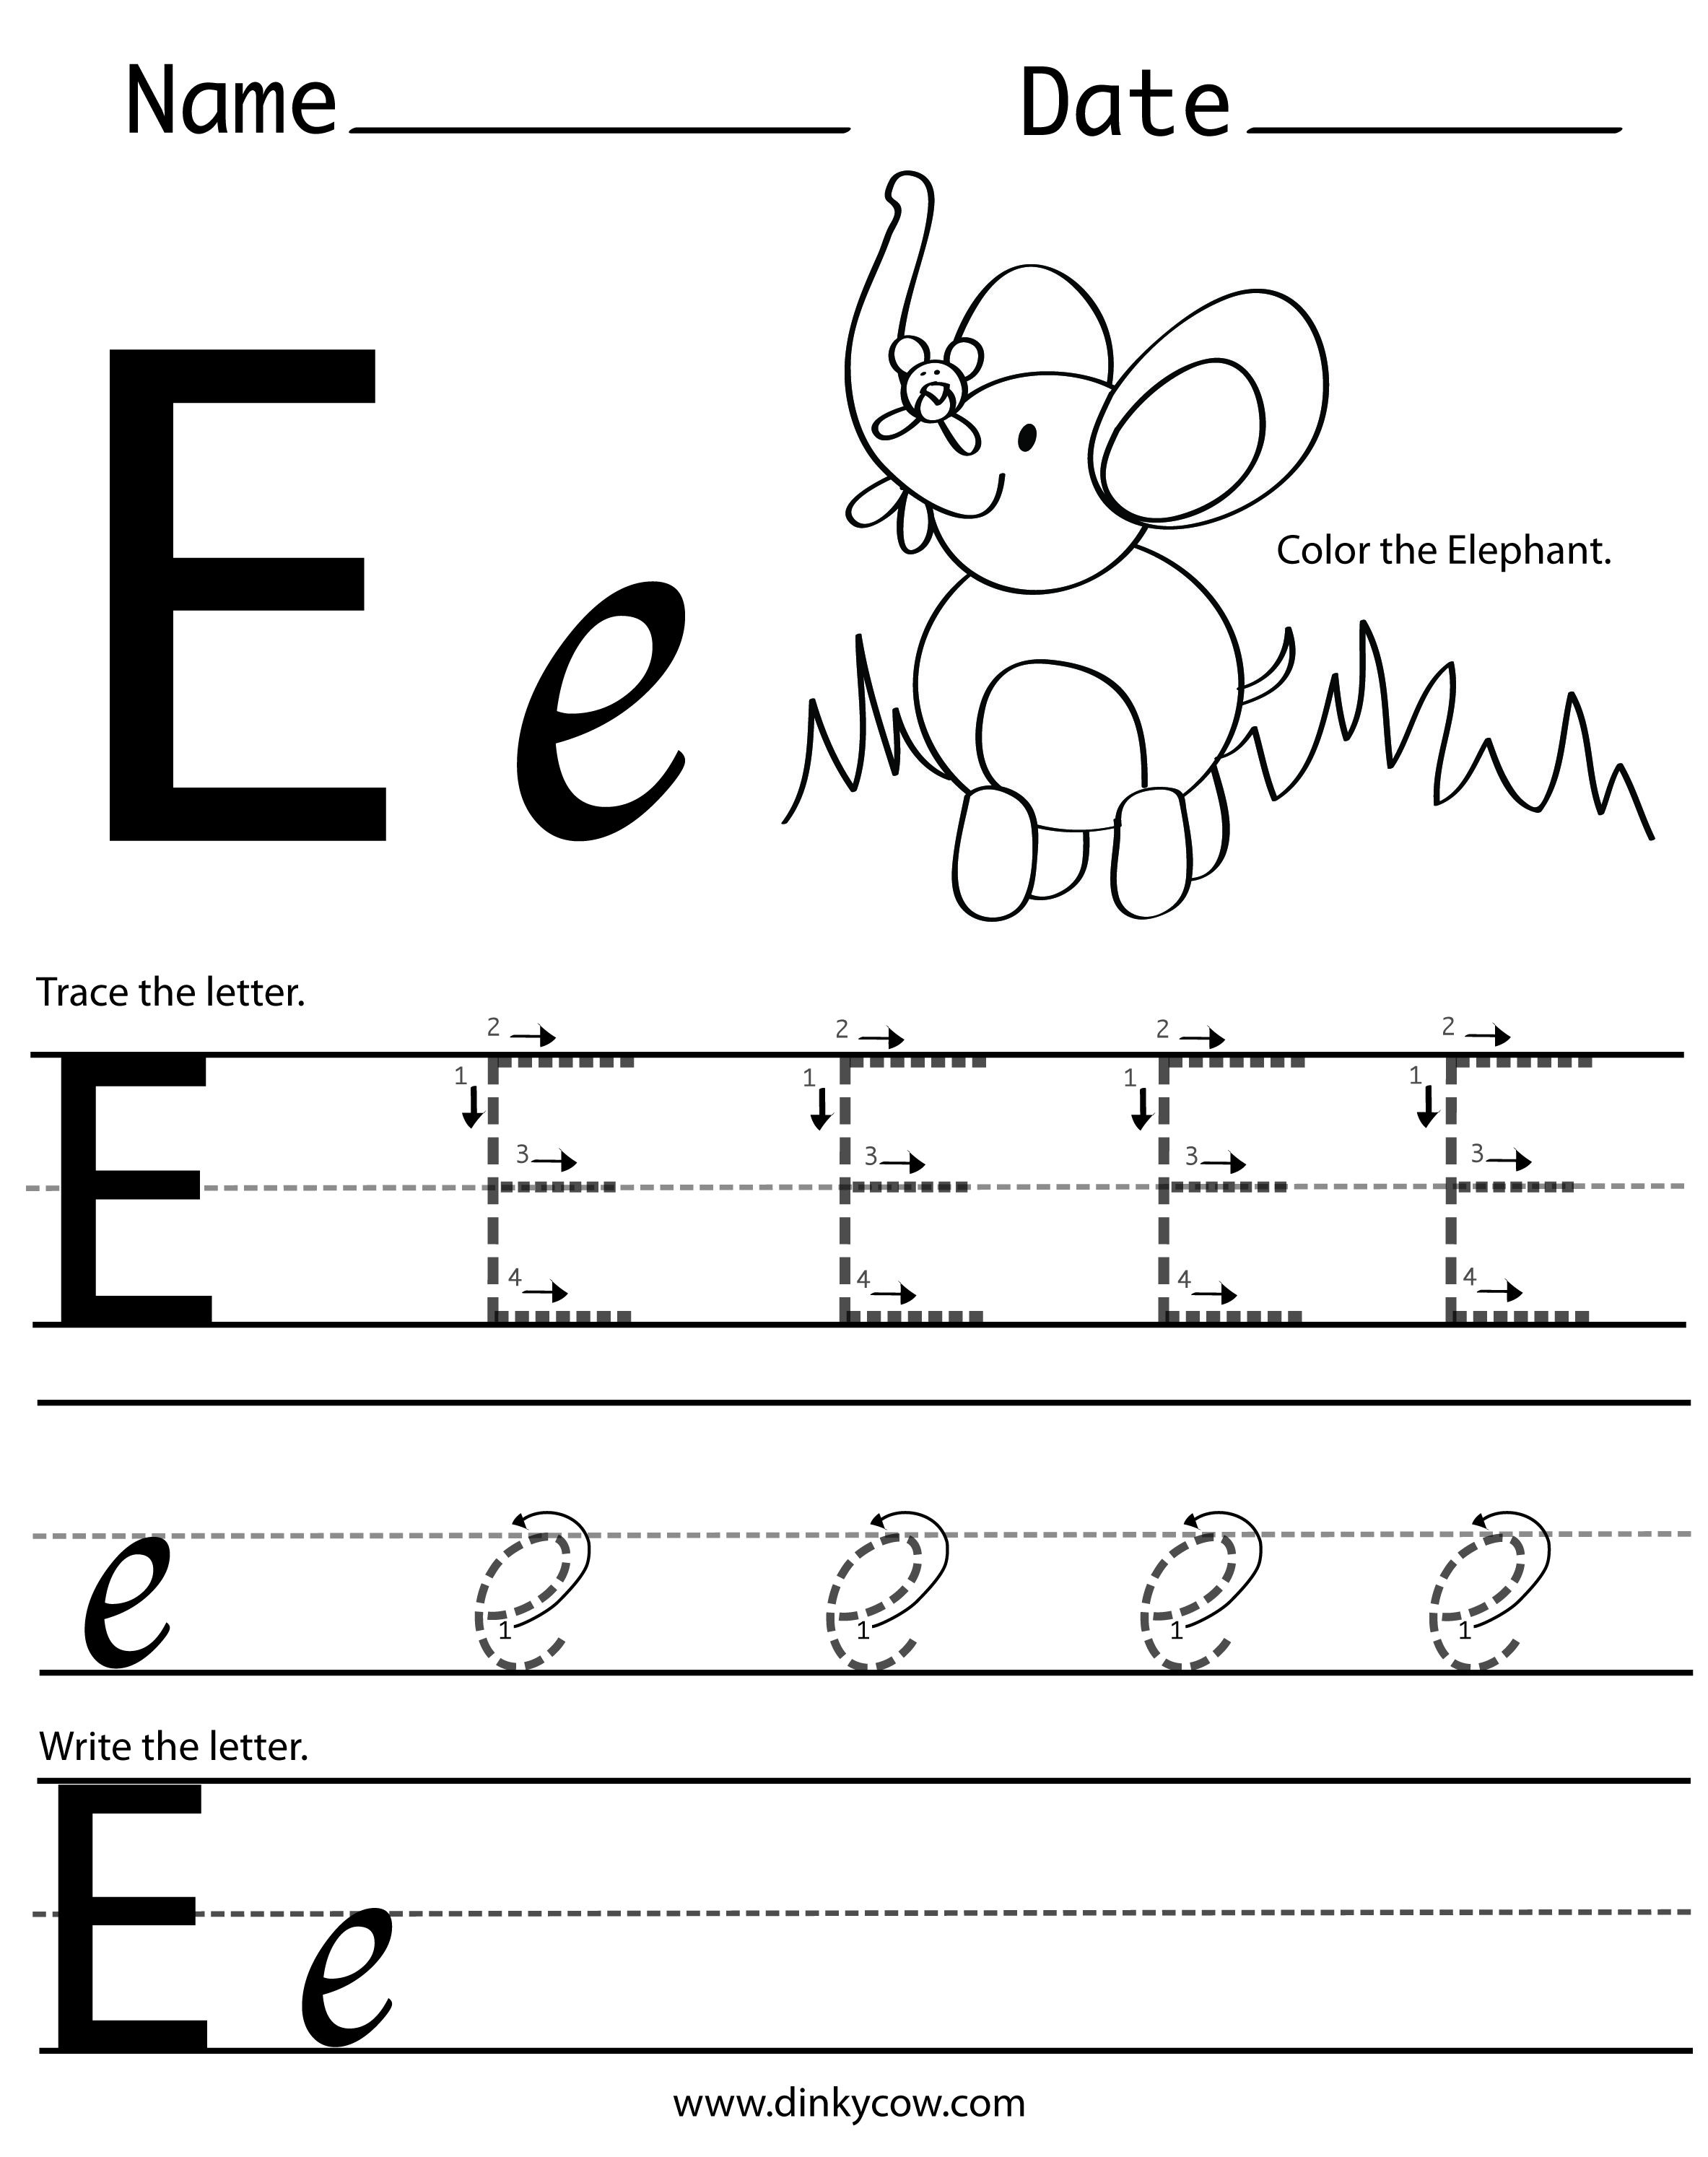 E Free Handwriting Worksheet Print 2 366 2 988 Pixels